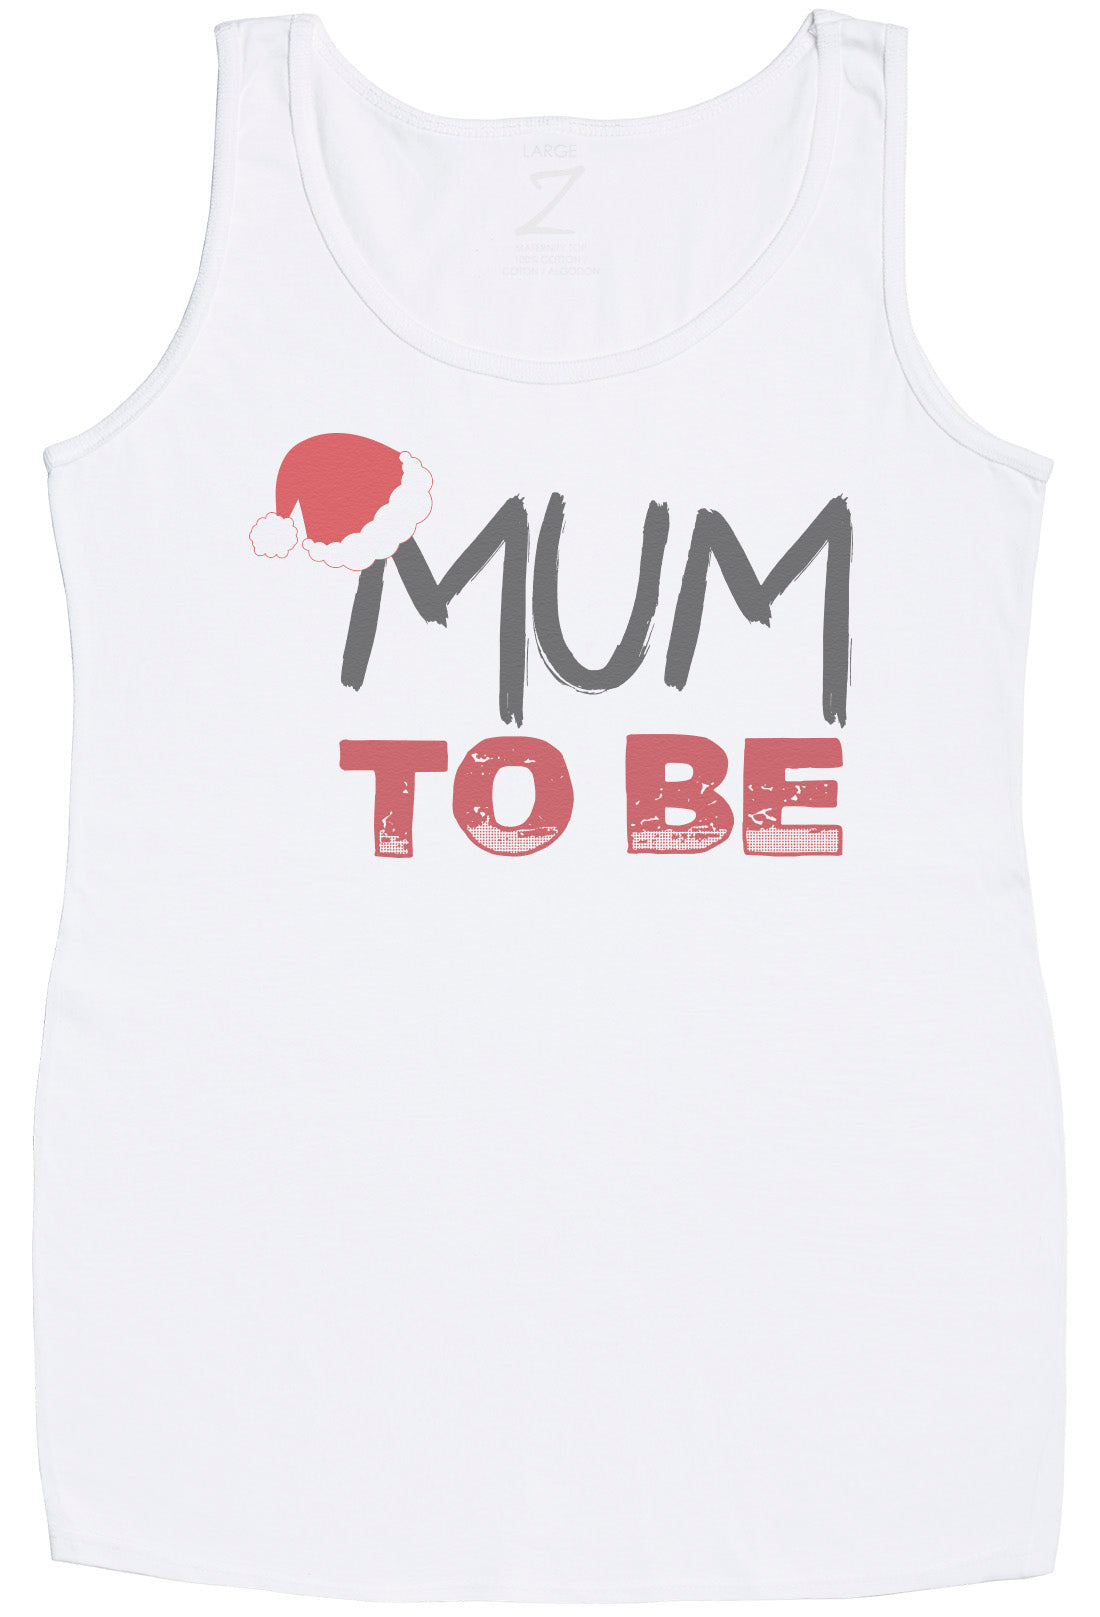 Mum To Be Maternity Vest Top